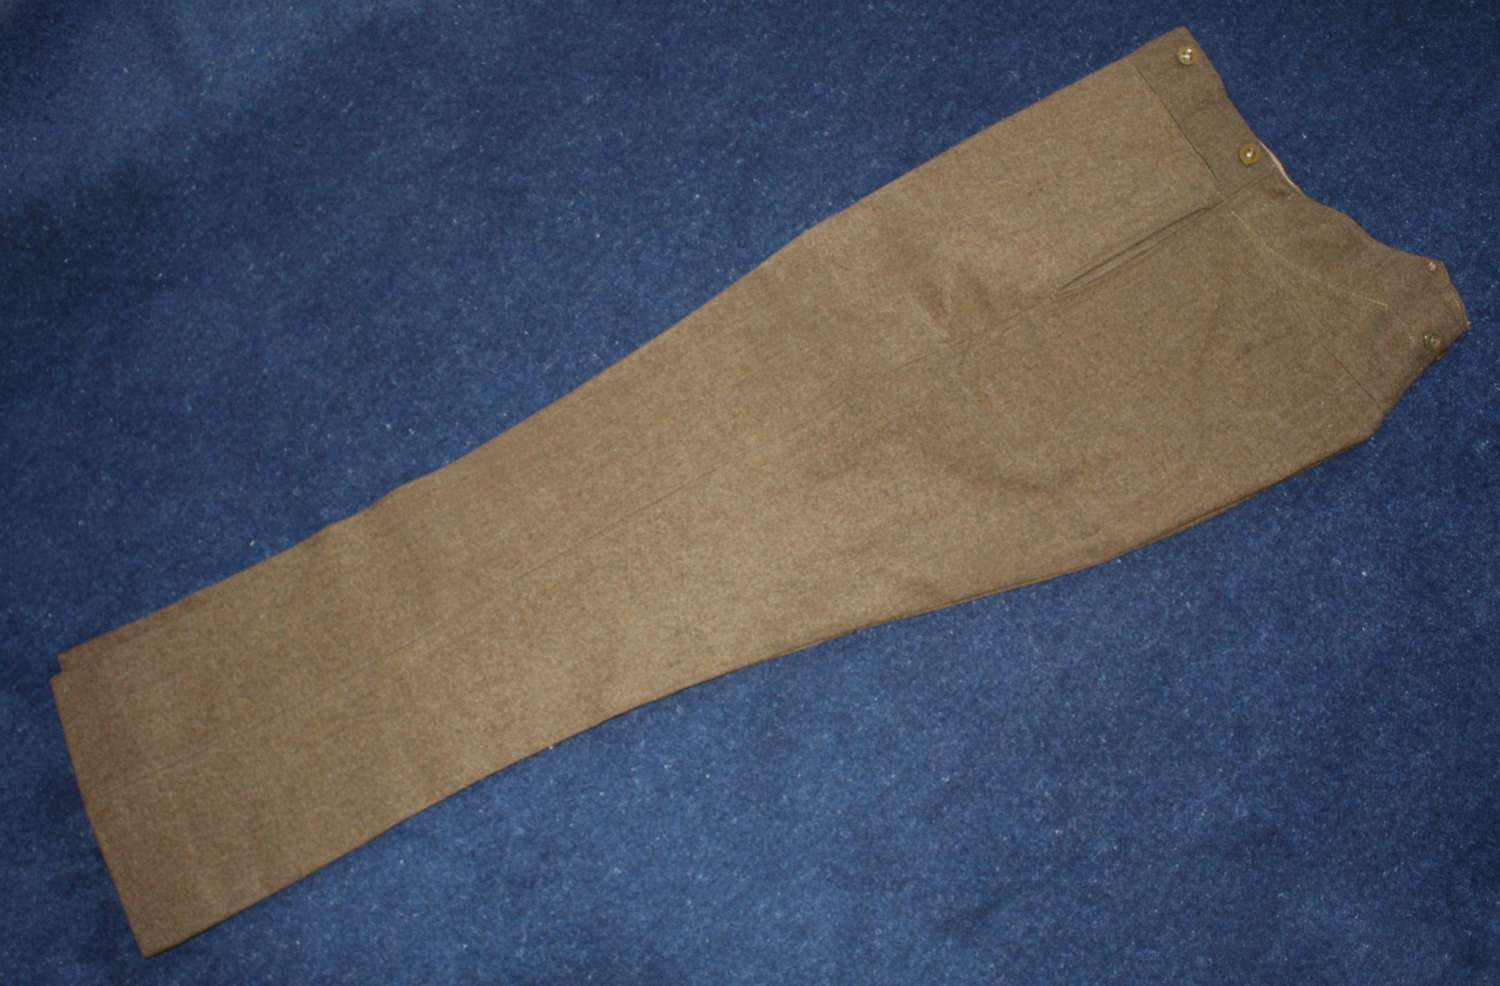 British Army Khaki Service Dress Trousers Other Ranks 1941 dated.